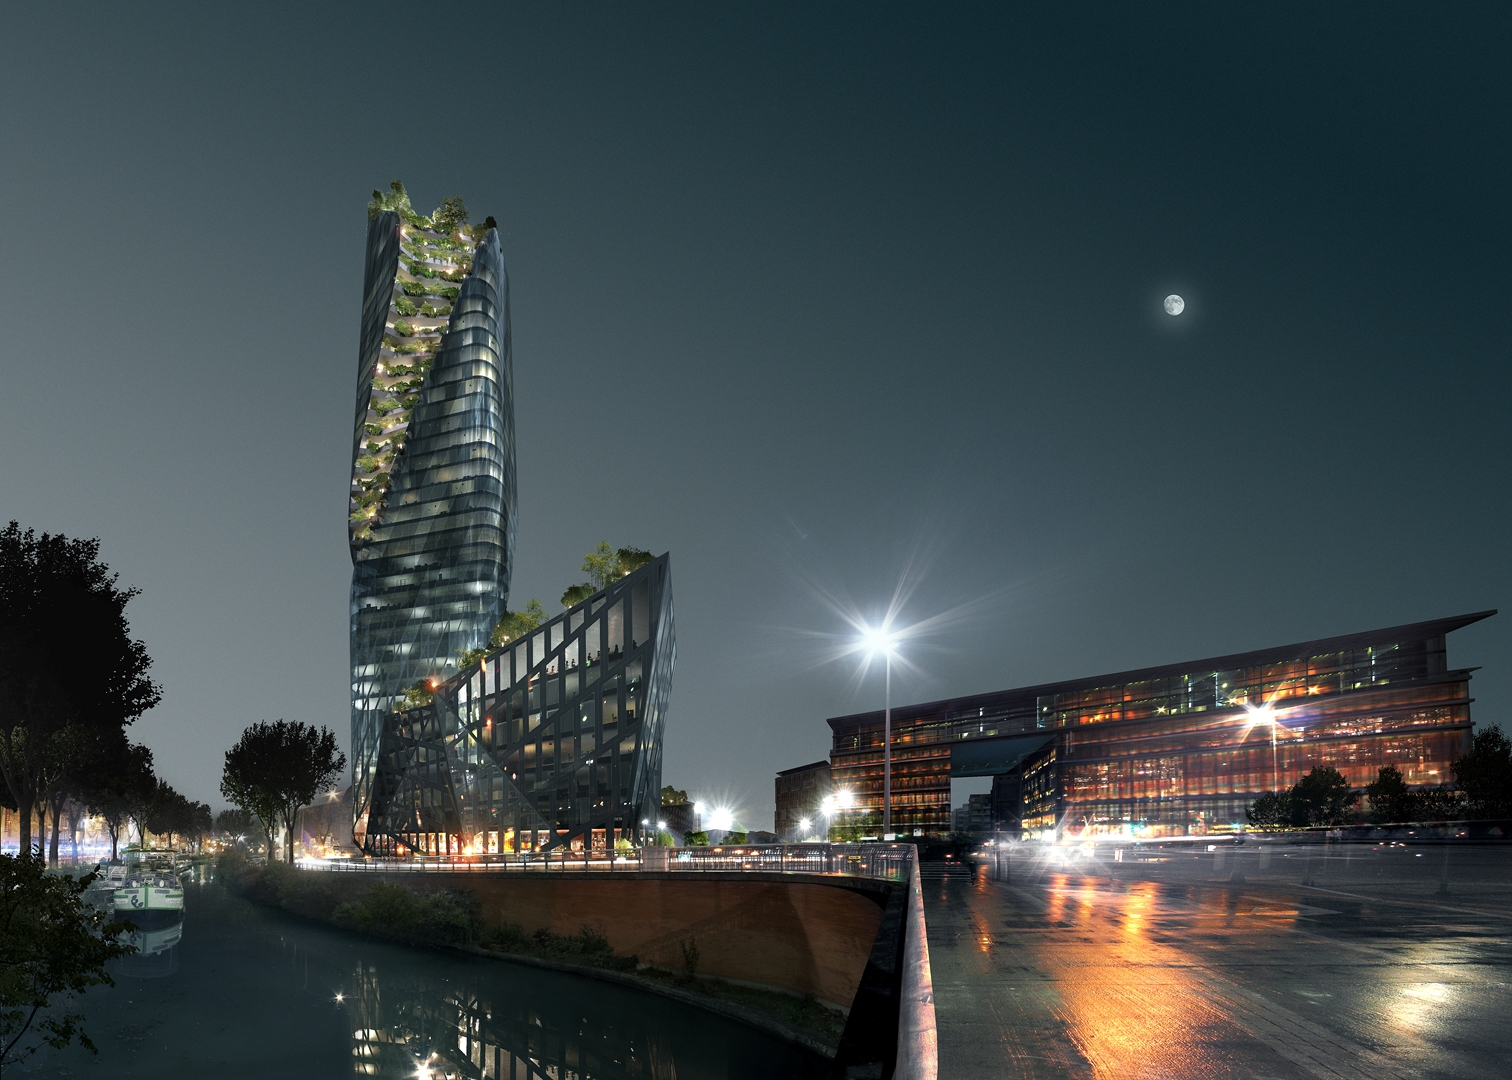 LIBESKIND-TOULOUSE-4-CANAL_MIDI_NUIT@LUXIGON (Copy)